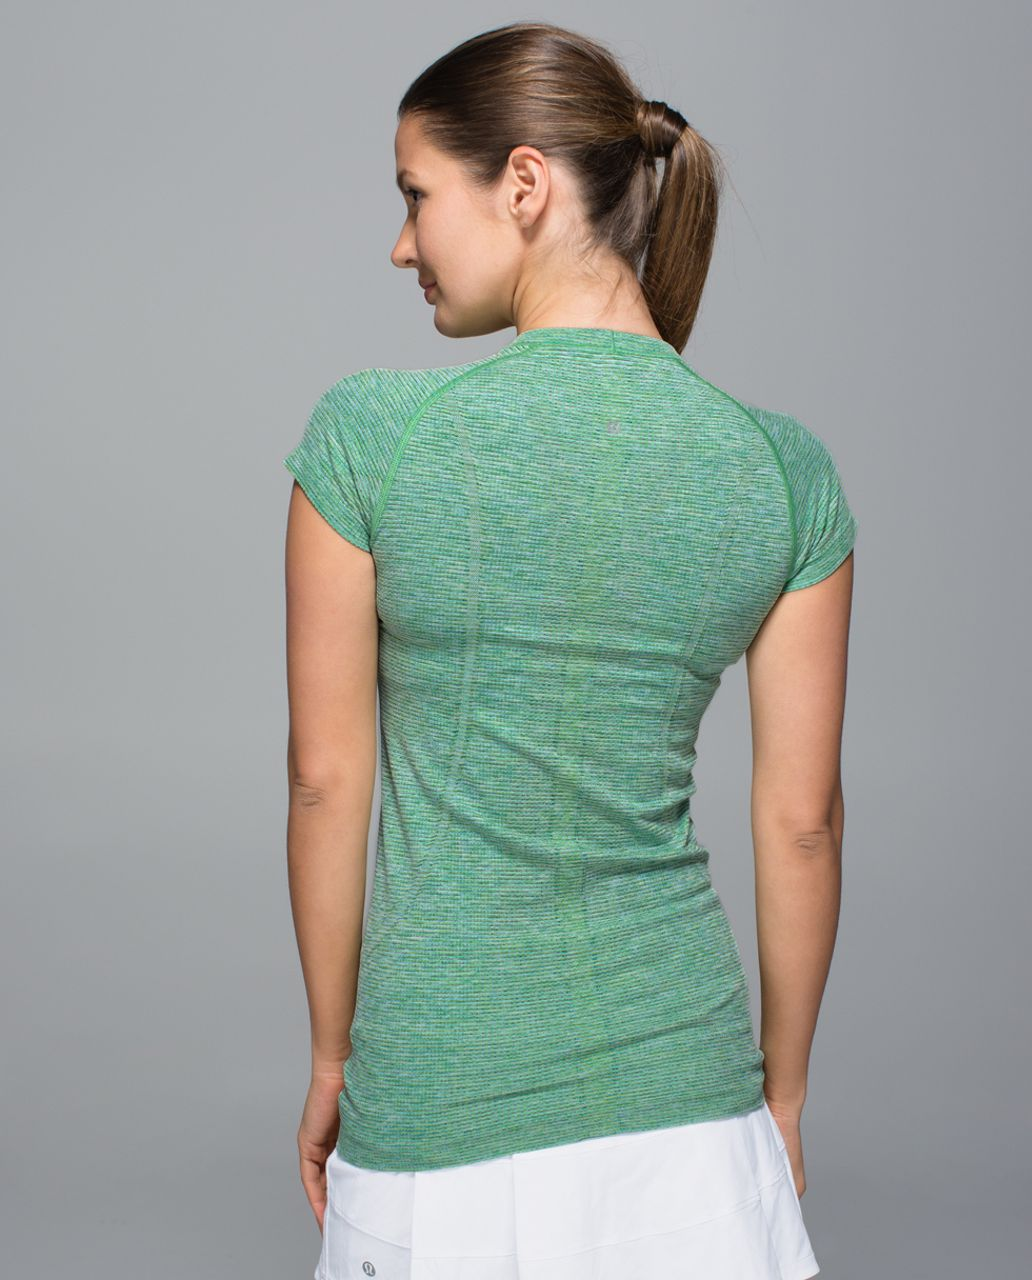 Lululemon Swiftly Tech Short Sleeve Crew - Pistachio / Black